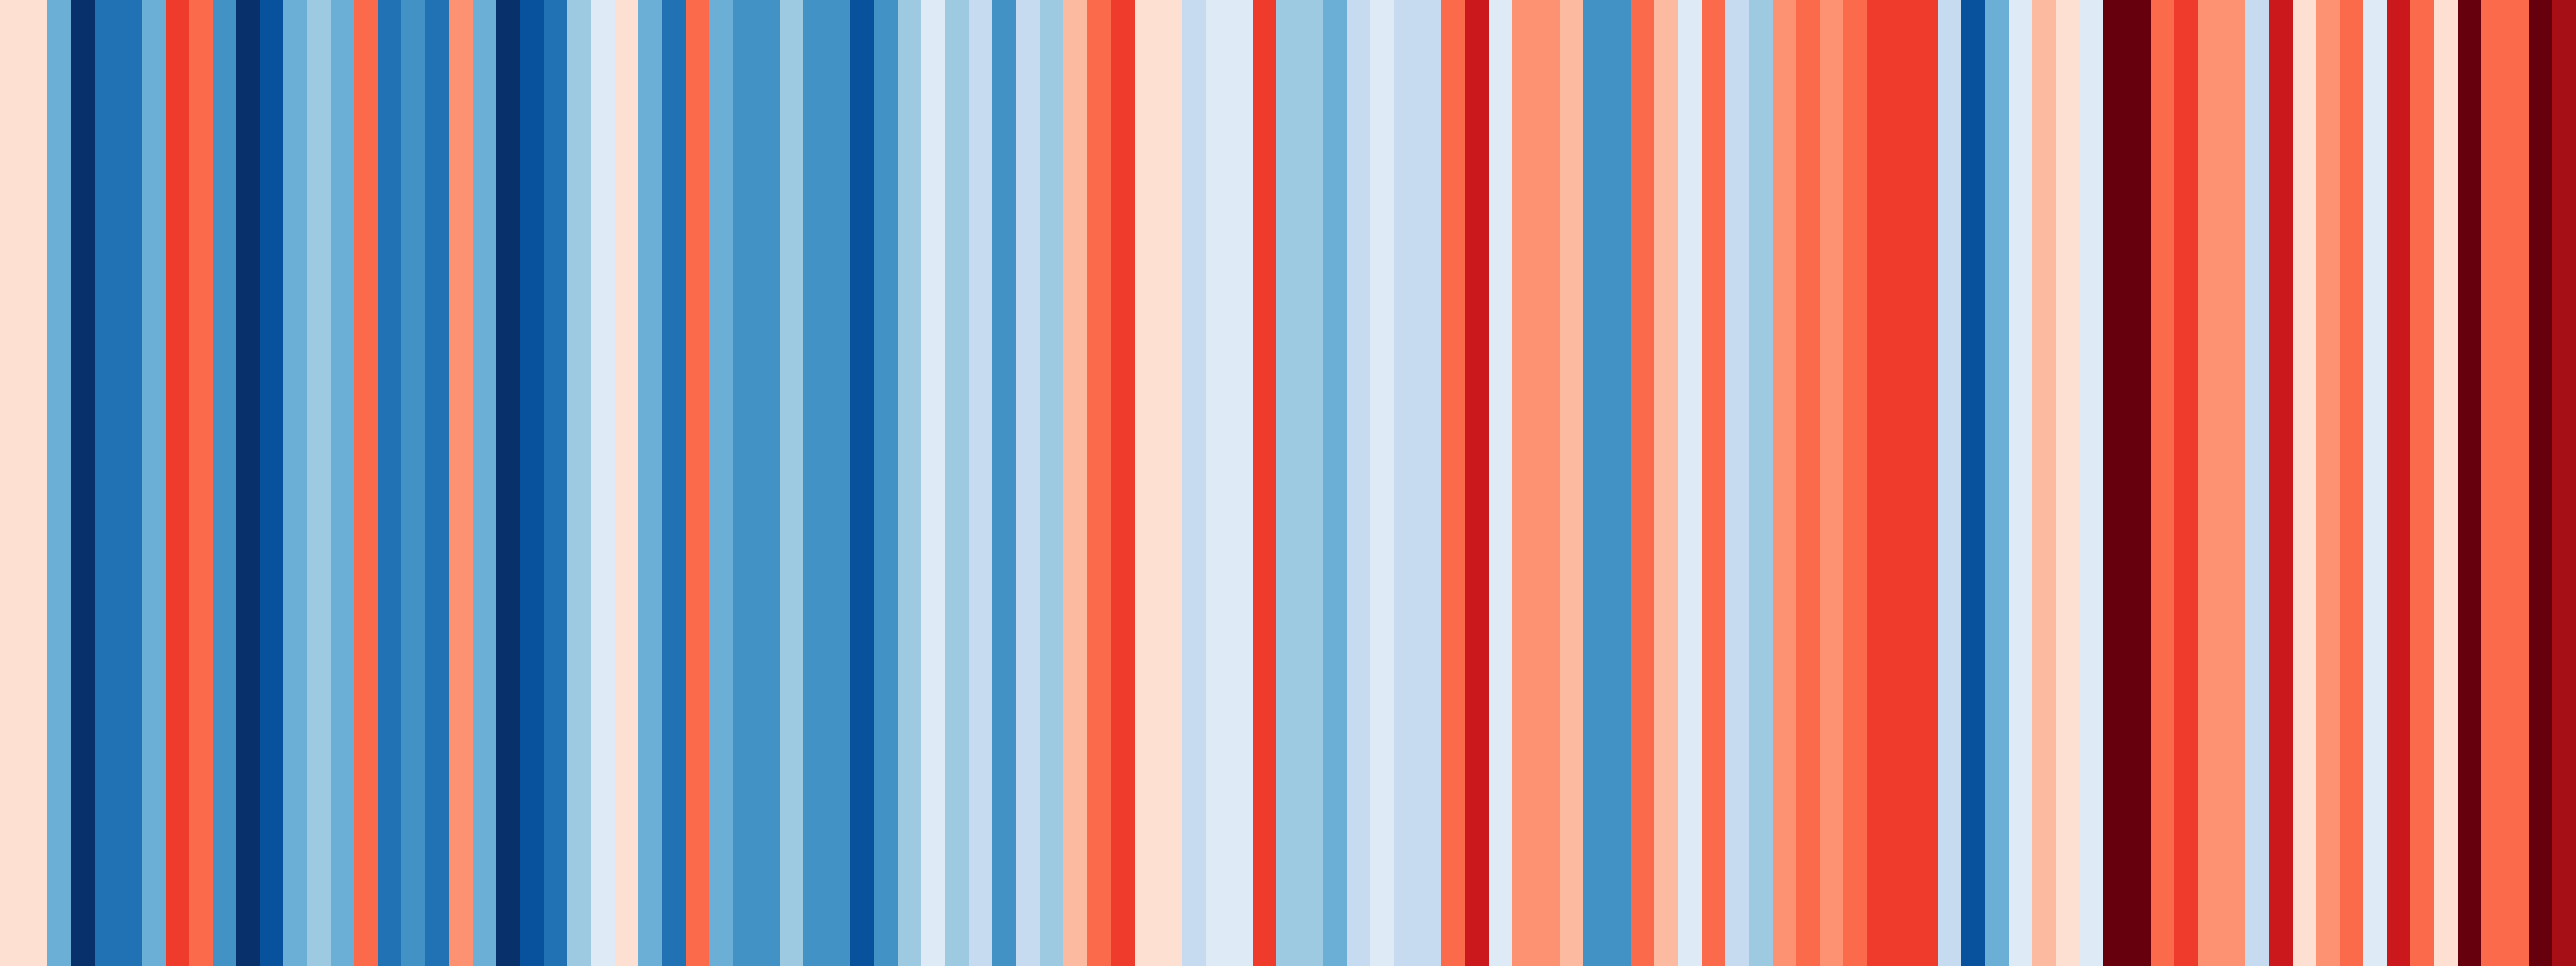 Warming stripes - Annual temperatures for New Zealand (1909-2017)